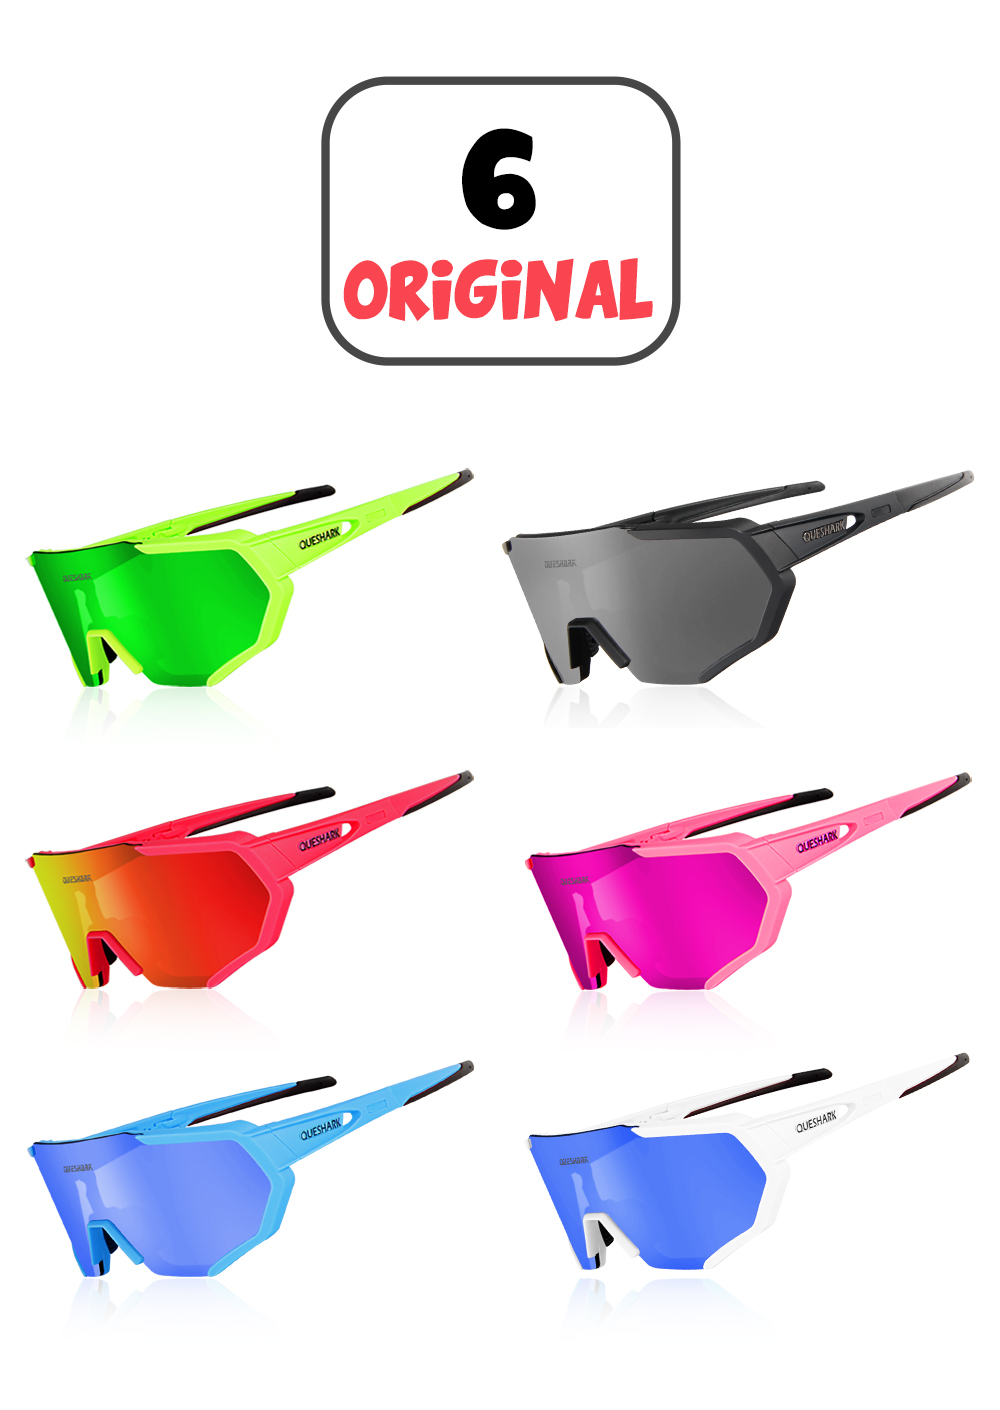 QUESHARK 2019 New Design Polarized Cycling Glasses For Man Women Bike Eyewear Cy